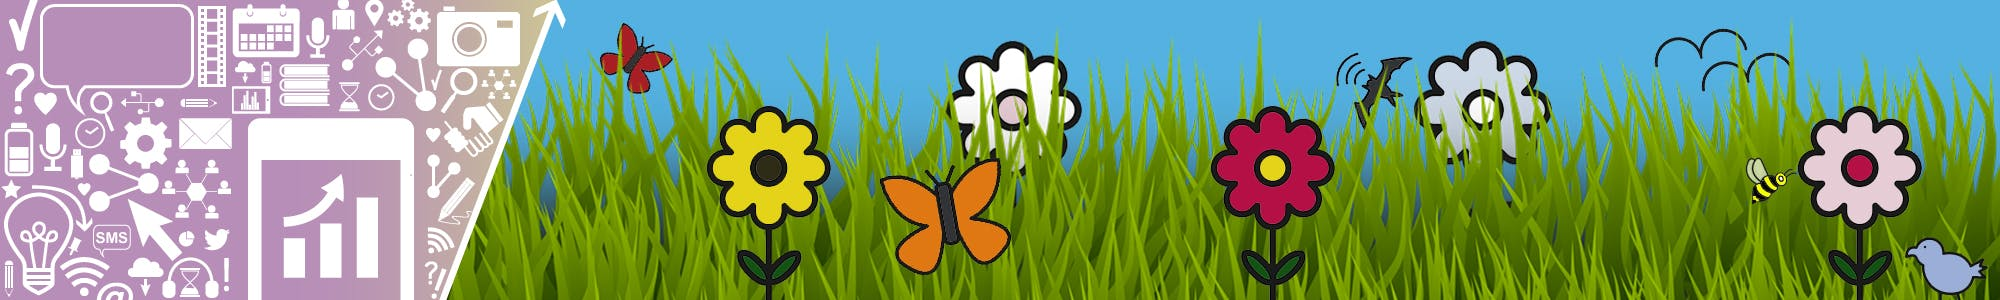 Engagement icons beside images of flowers and pollinator species, such as butterflies, birds, bees and bats.